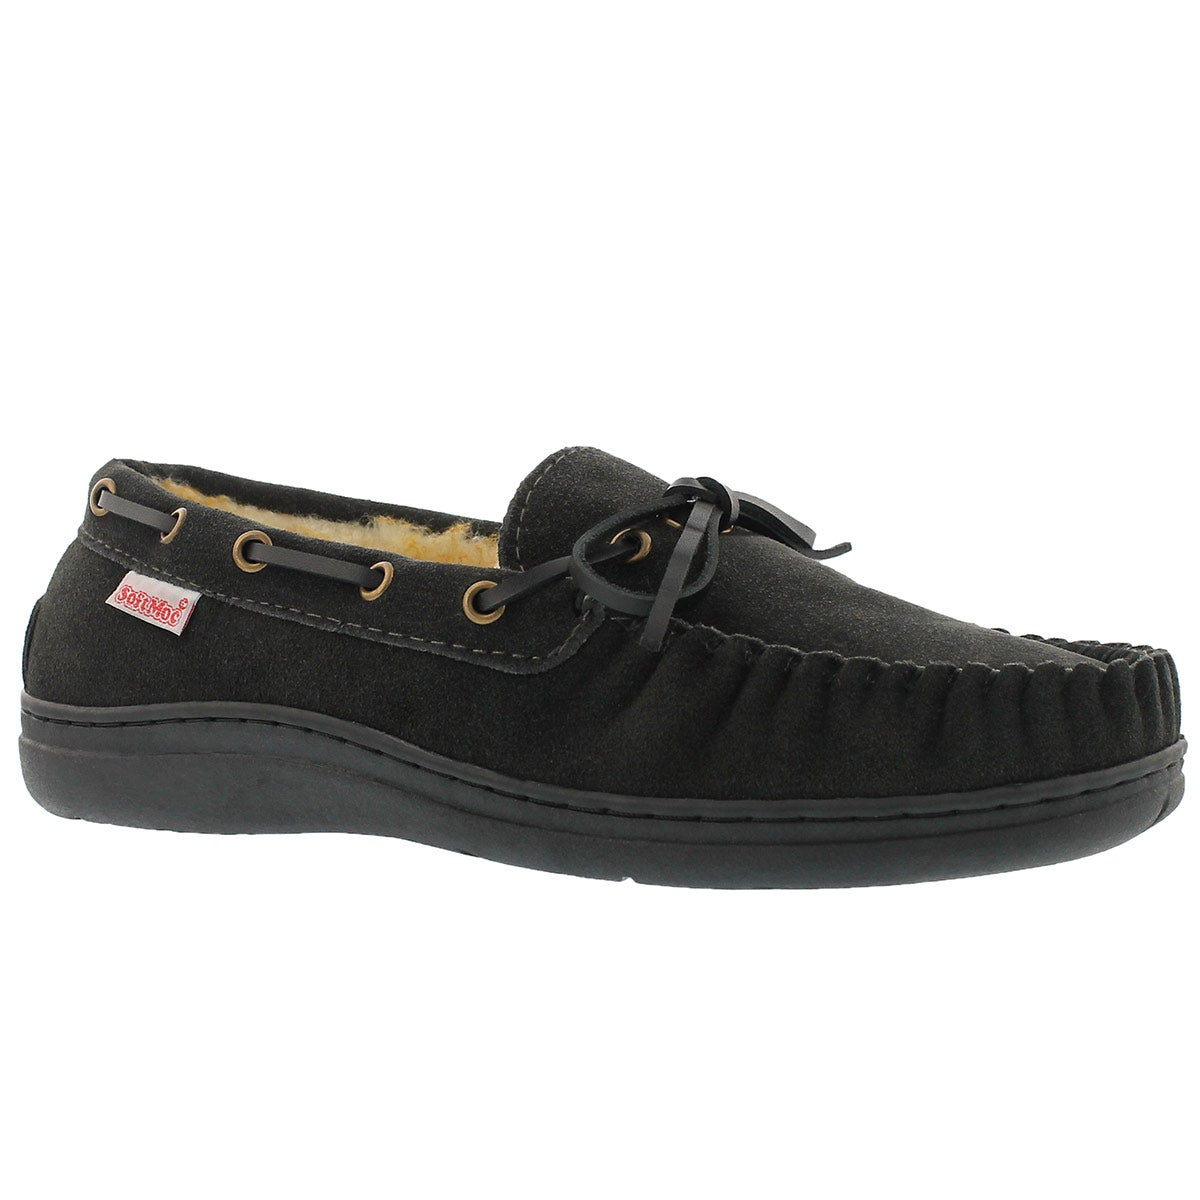 Mns Duke II charcoal lined suede mocc